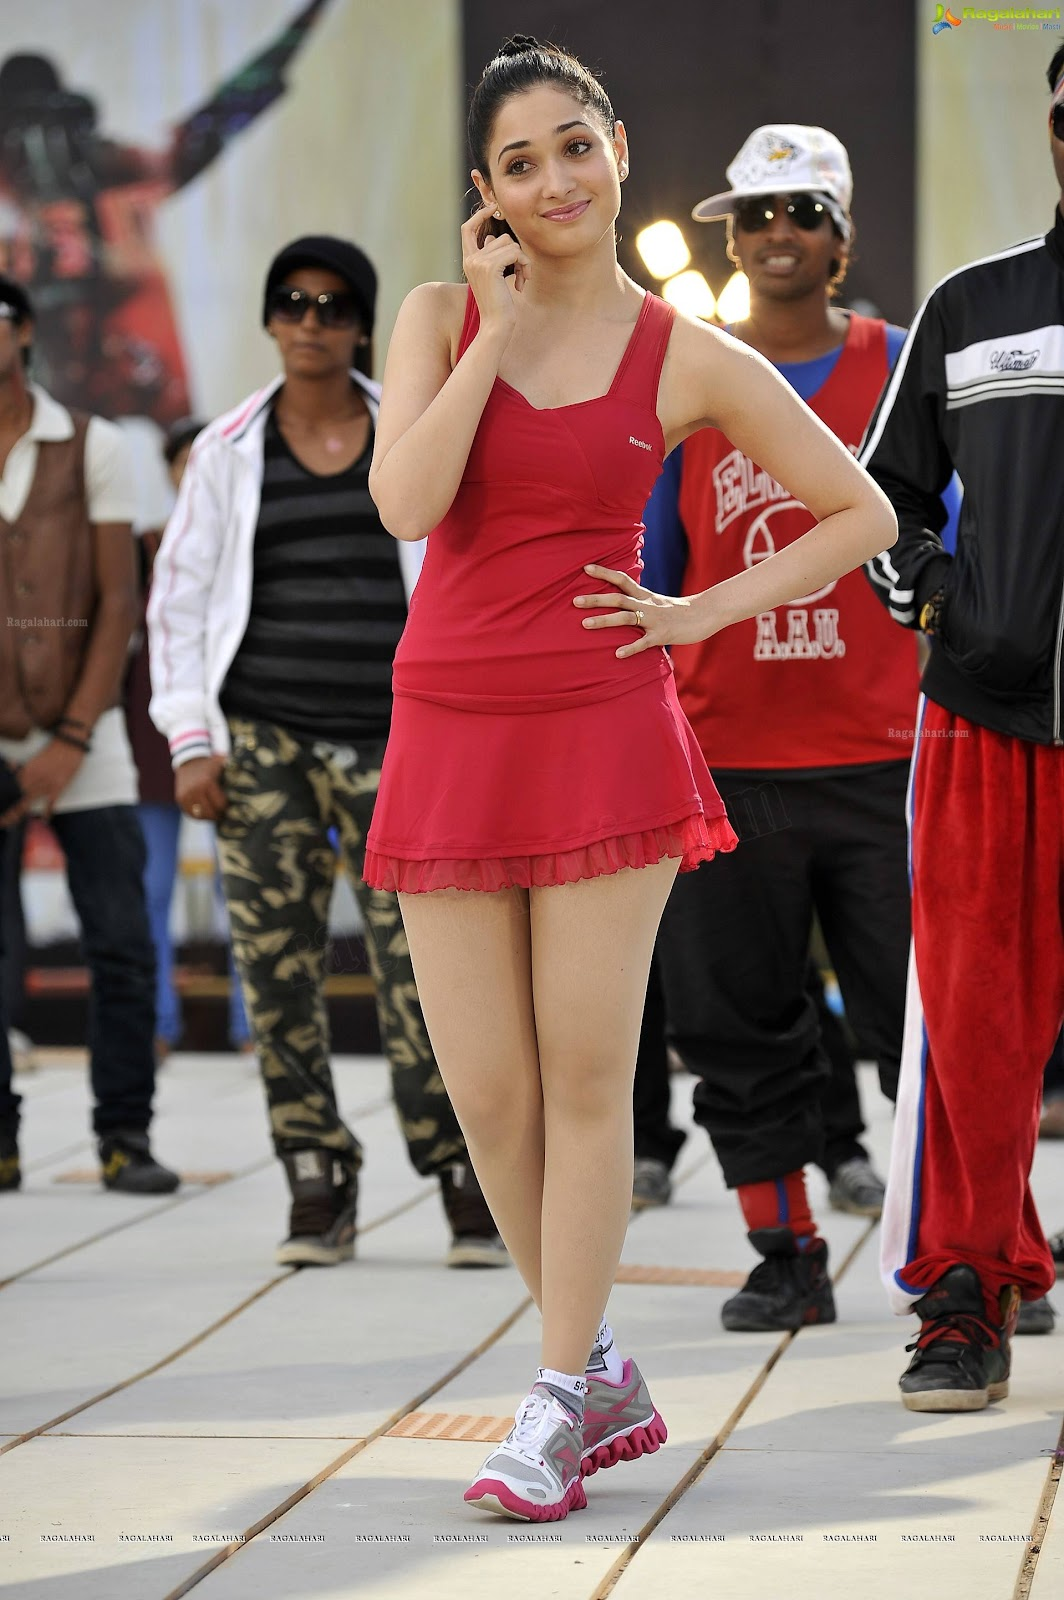 Tamanna in short red dress -  Tamanna Leg Show in Red Short Dress - HD